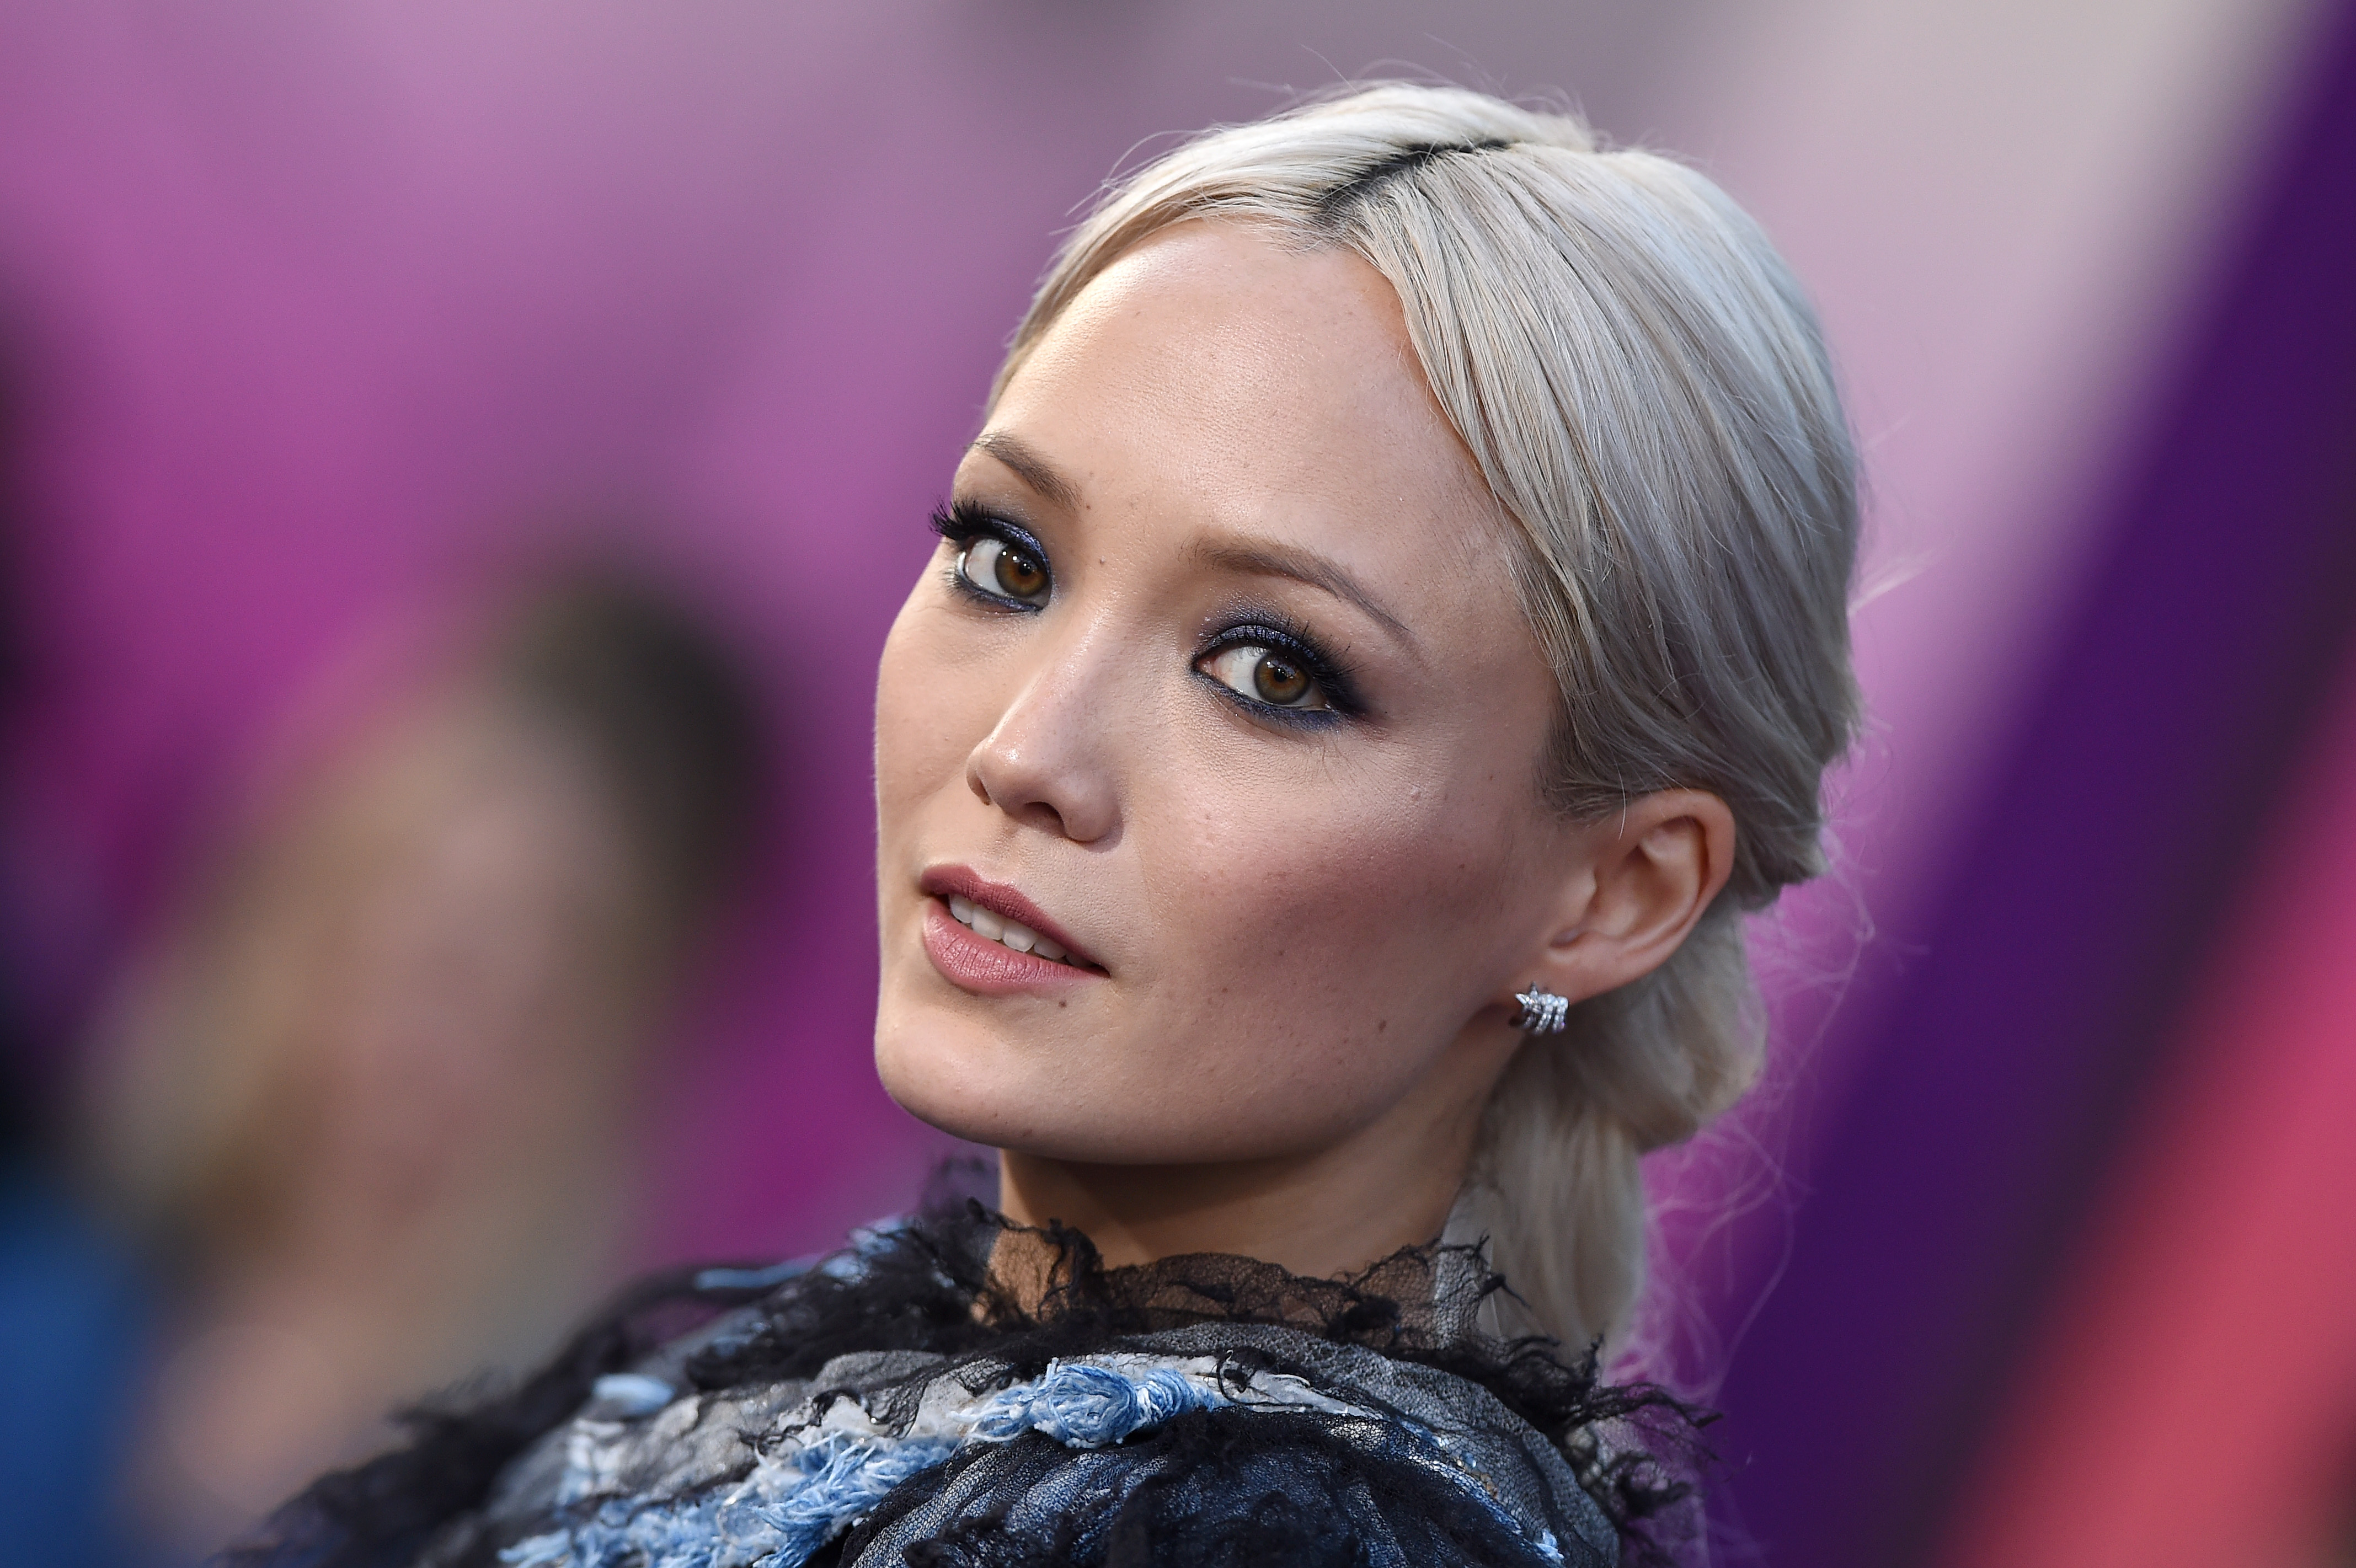 Actress Pom Klementieff arrives at the premiere of Disney and Marvel's 'Guardians of the Galaxy Vol. 2' at Dolby Theatre on April 19, 2017 in Hollywood, California.